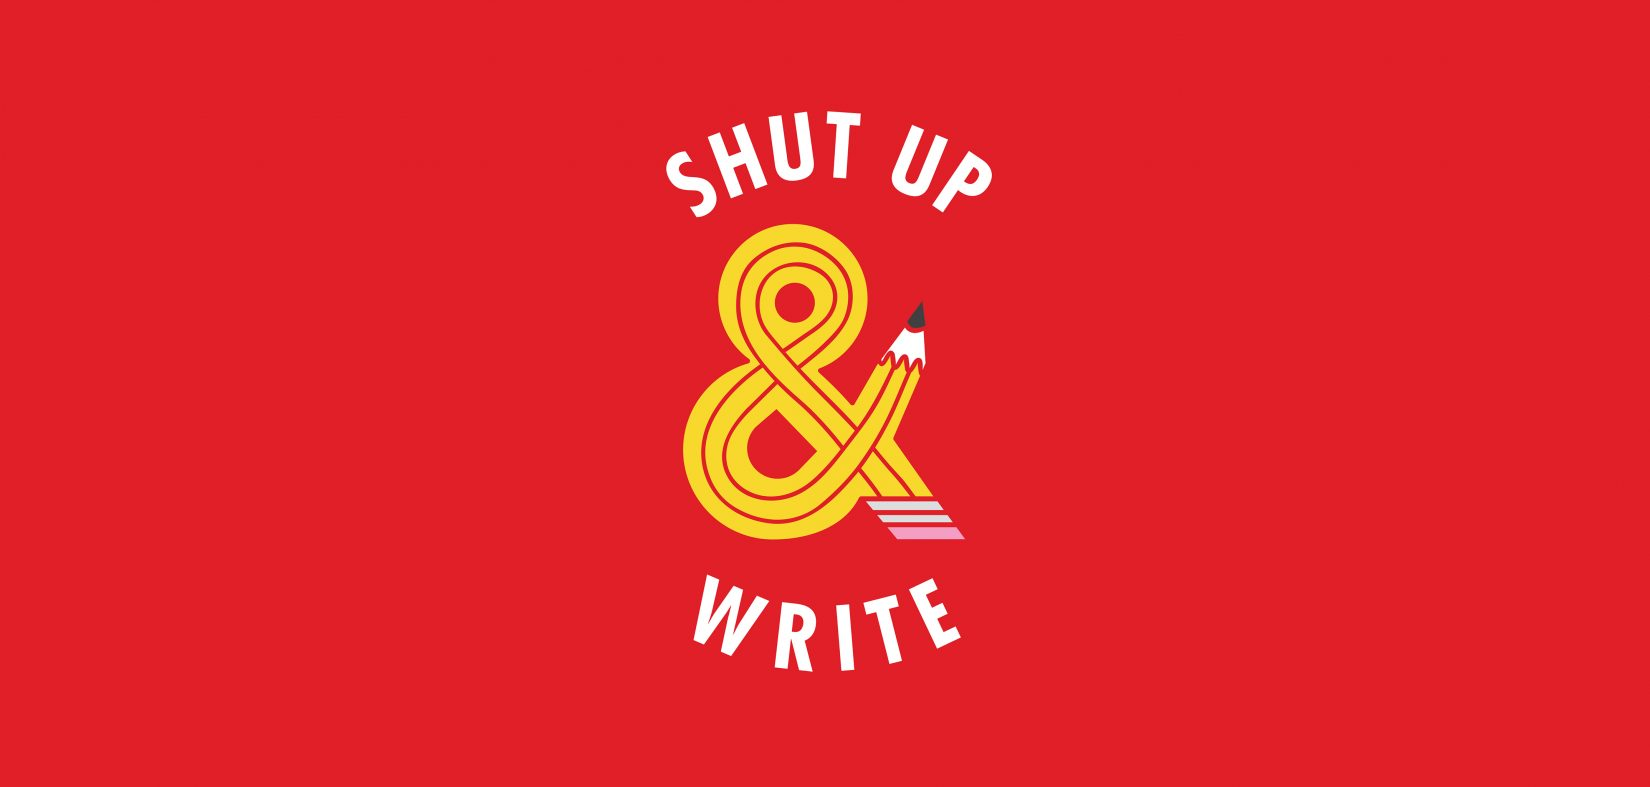 Shut Up And Write logo. The ampersand is in the design of a pencil.